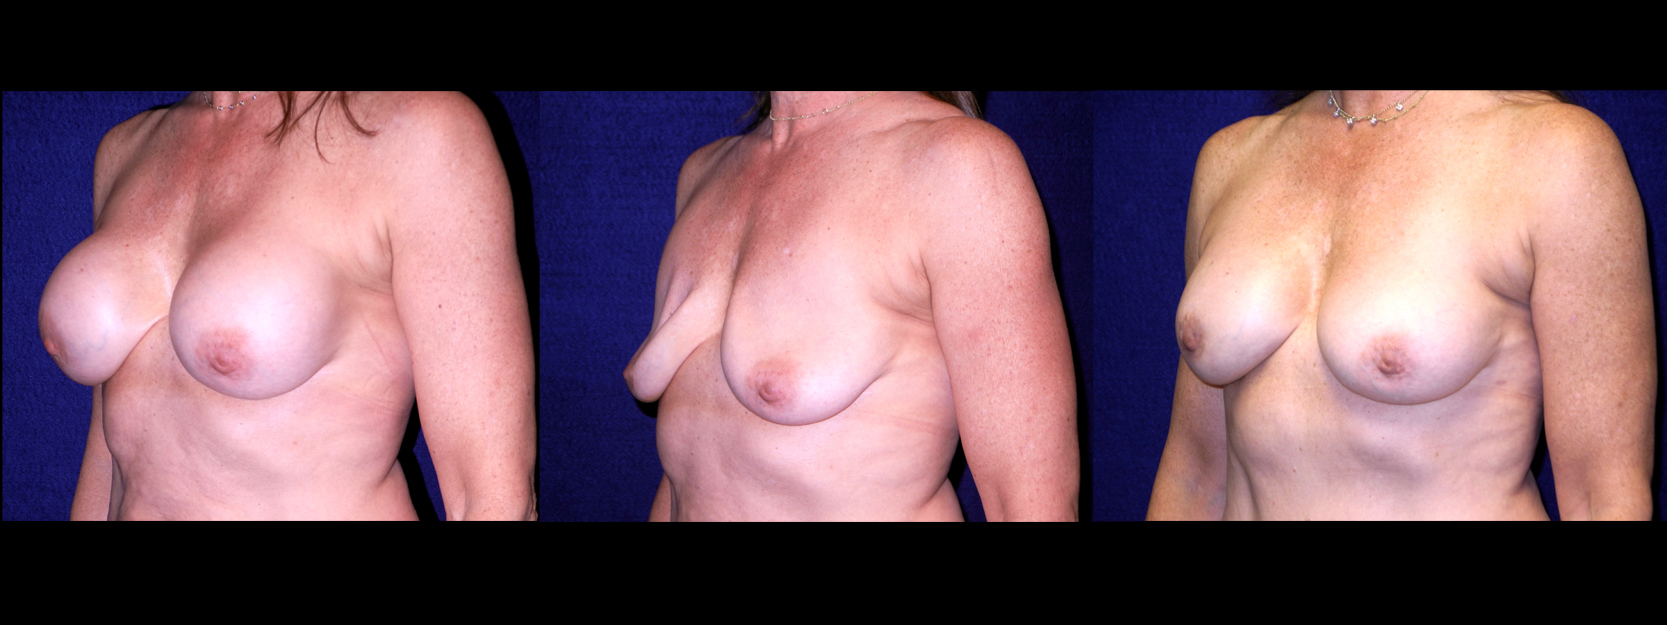 Left 3/4 View - Implant Revision - Contracted Saline, Deflated, Replaced with Silicone Implants